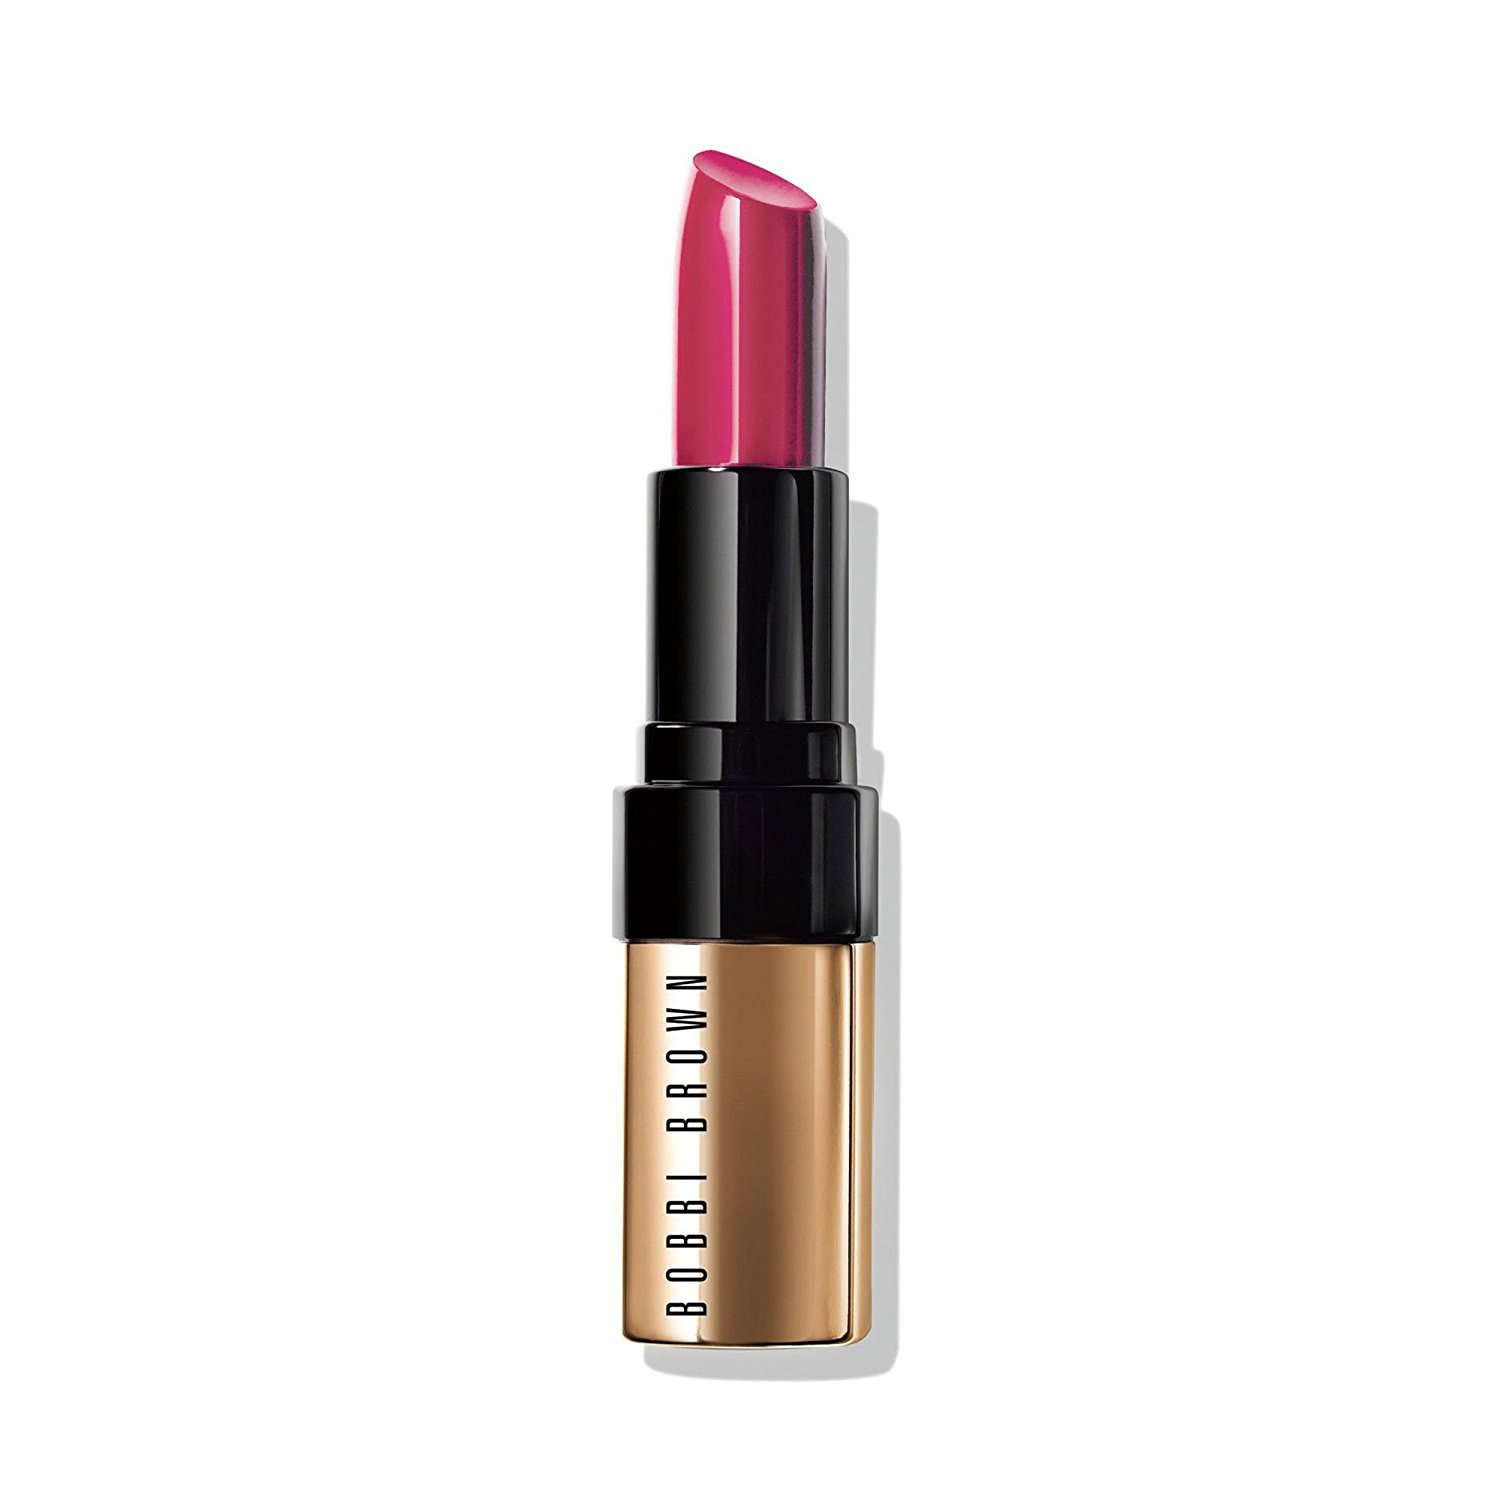 Bobbi Brown Luxe Lip Color No. 26 Retro Red for Women, 0.13 Ounce